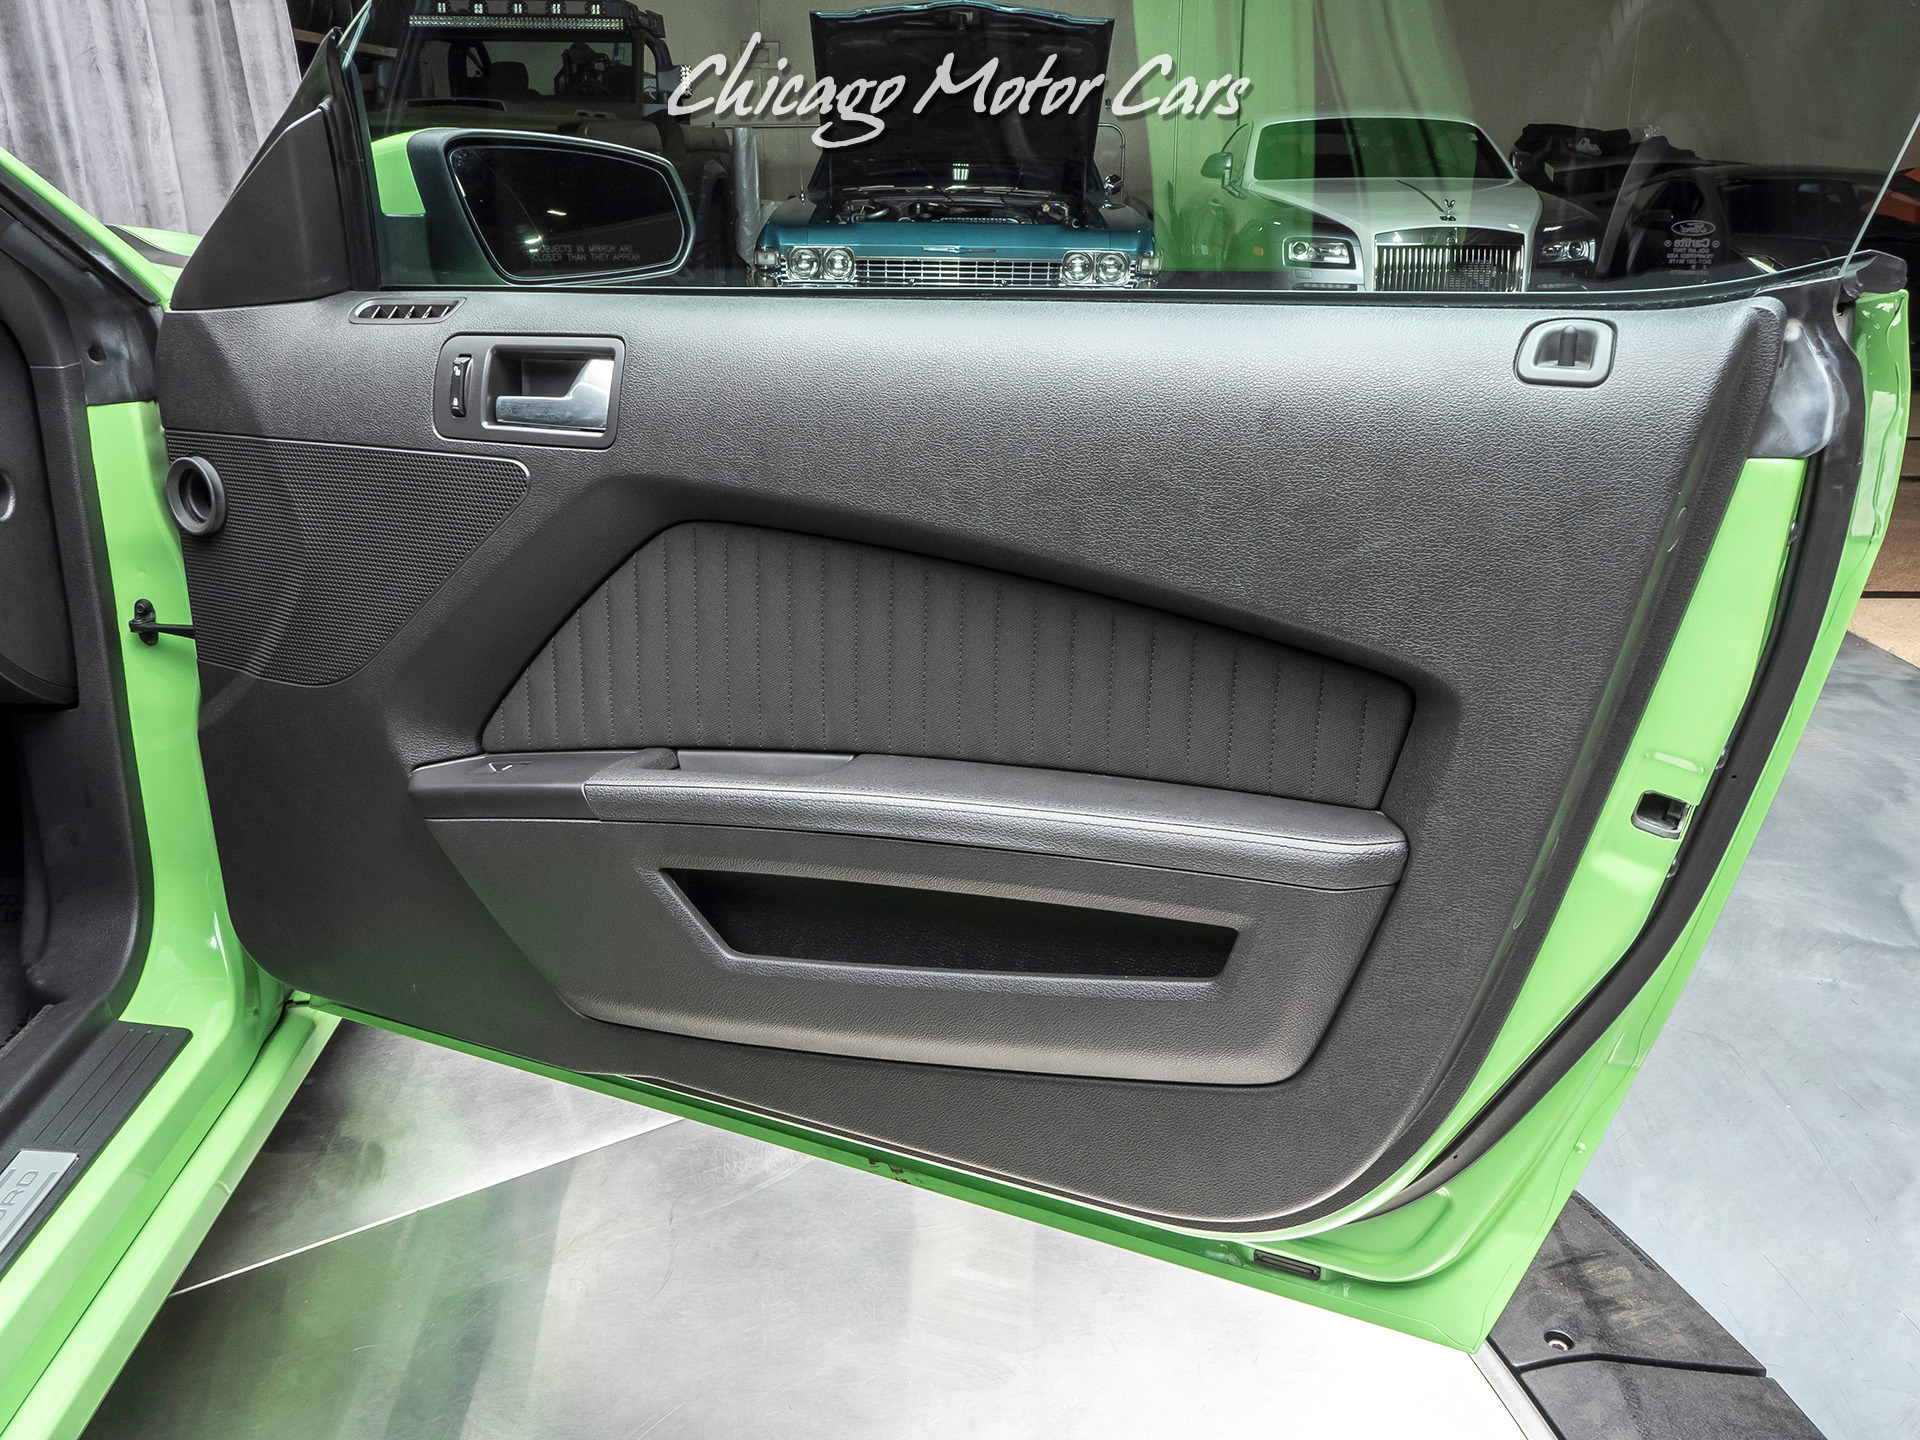 Used-2013-Ford-Mustang-Boss-302-Coupe-GOTTA-HAVE-IT-GREEN-METALLIC-TRI-COAT-RARE-EXAMPLE